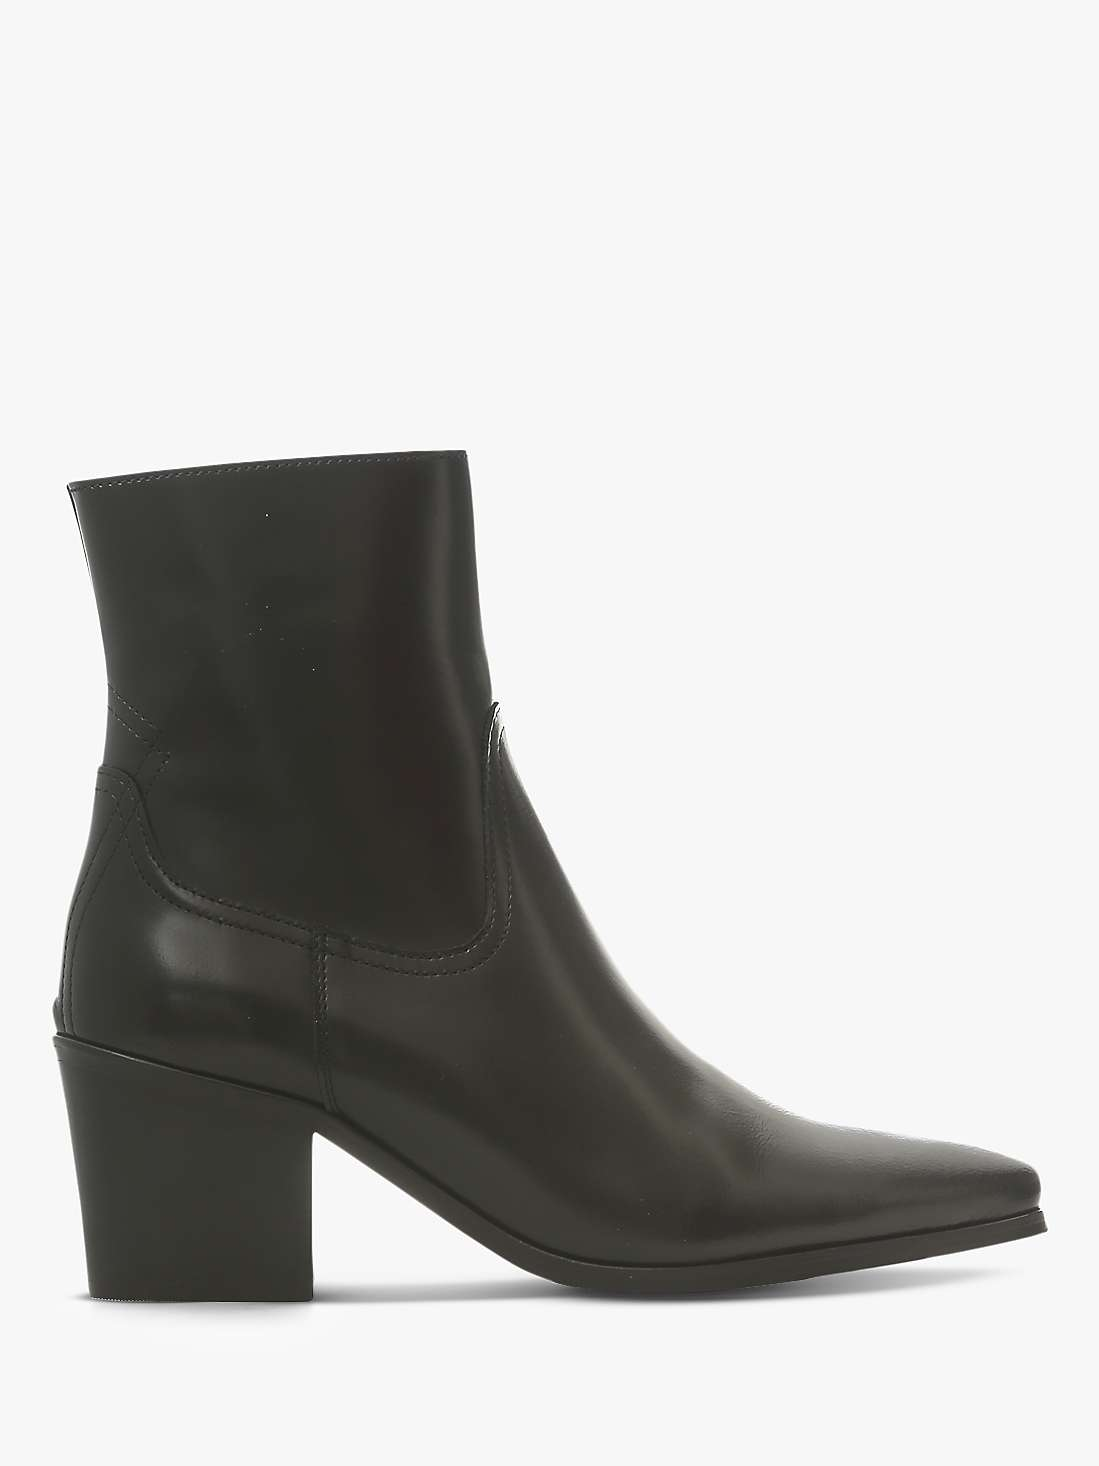 Shoe The Bear Georgia Leather Block Heel Ankle Boots, Black by John Lewis